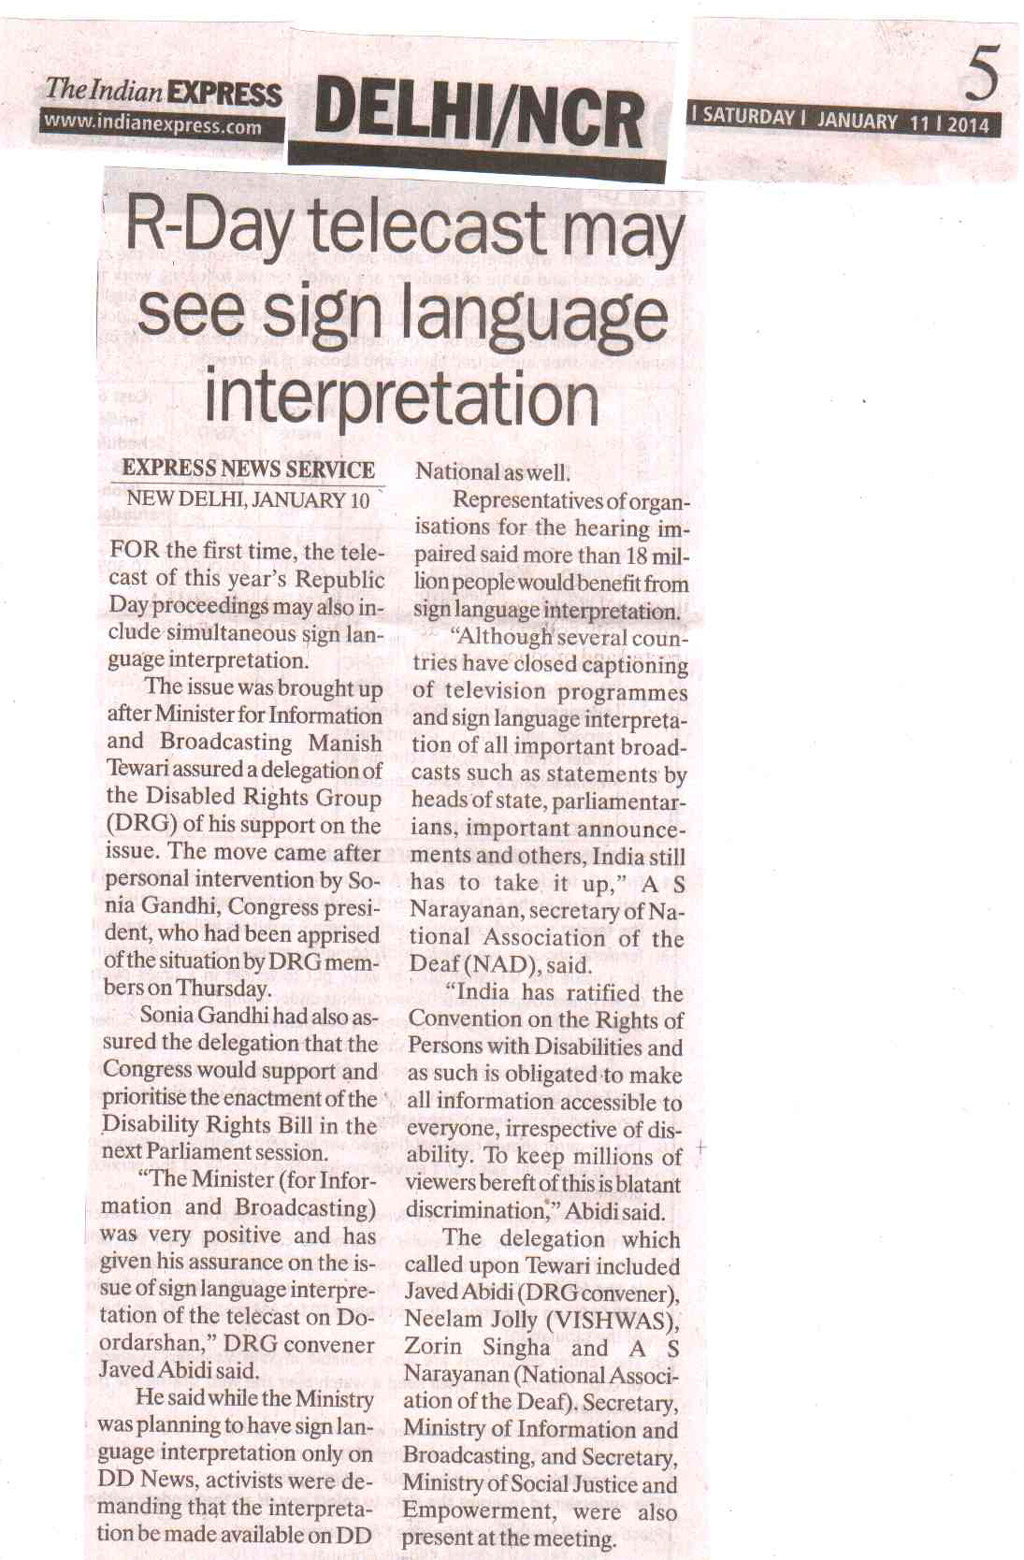 R-Day telecast may see sign langauge interpretation